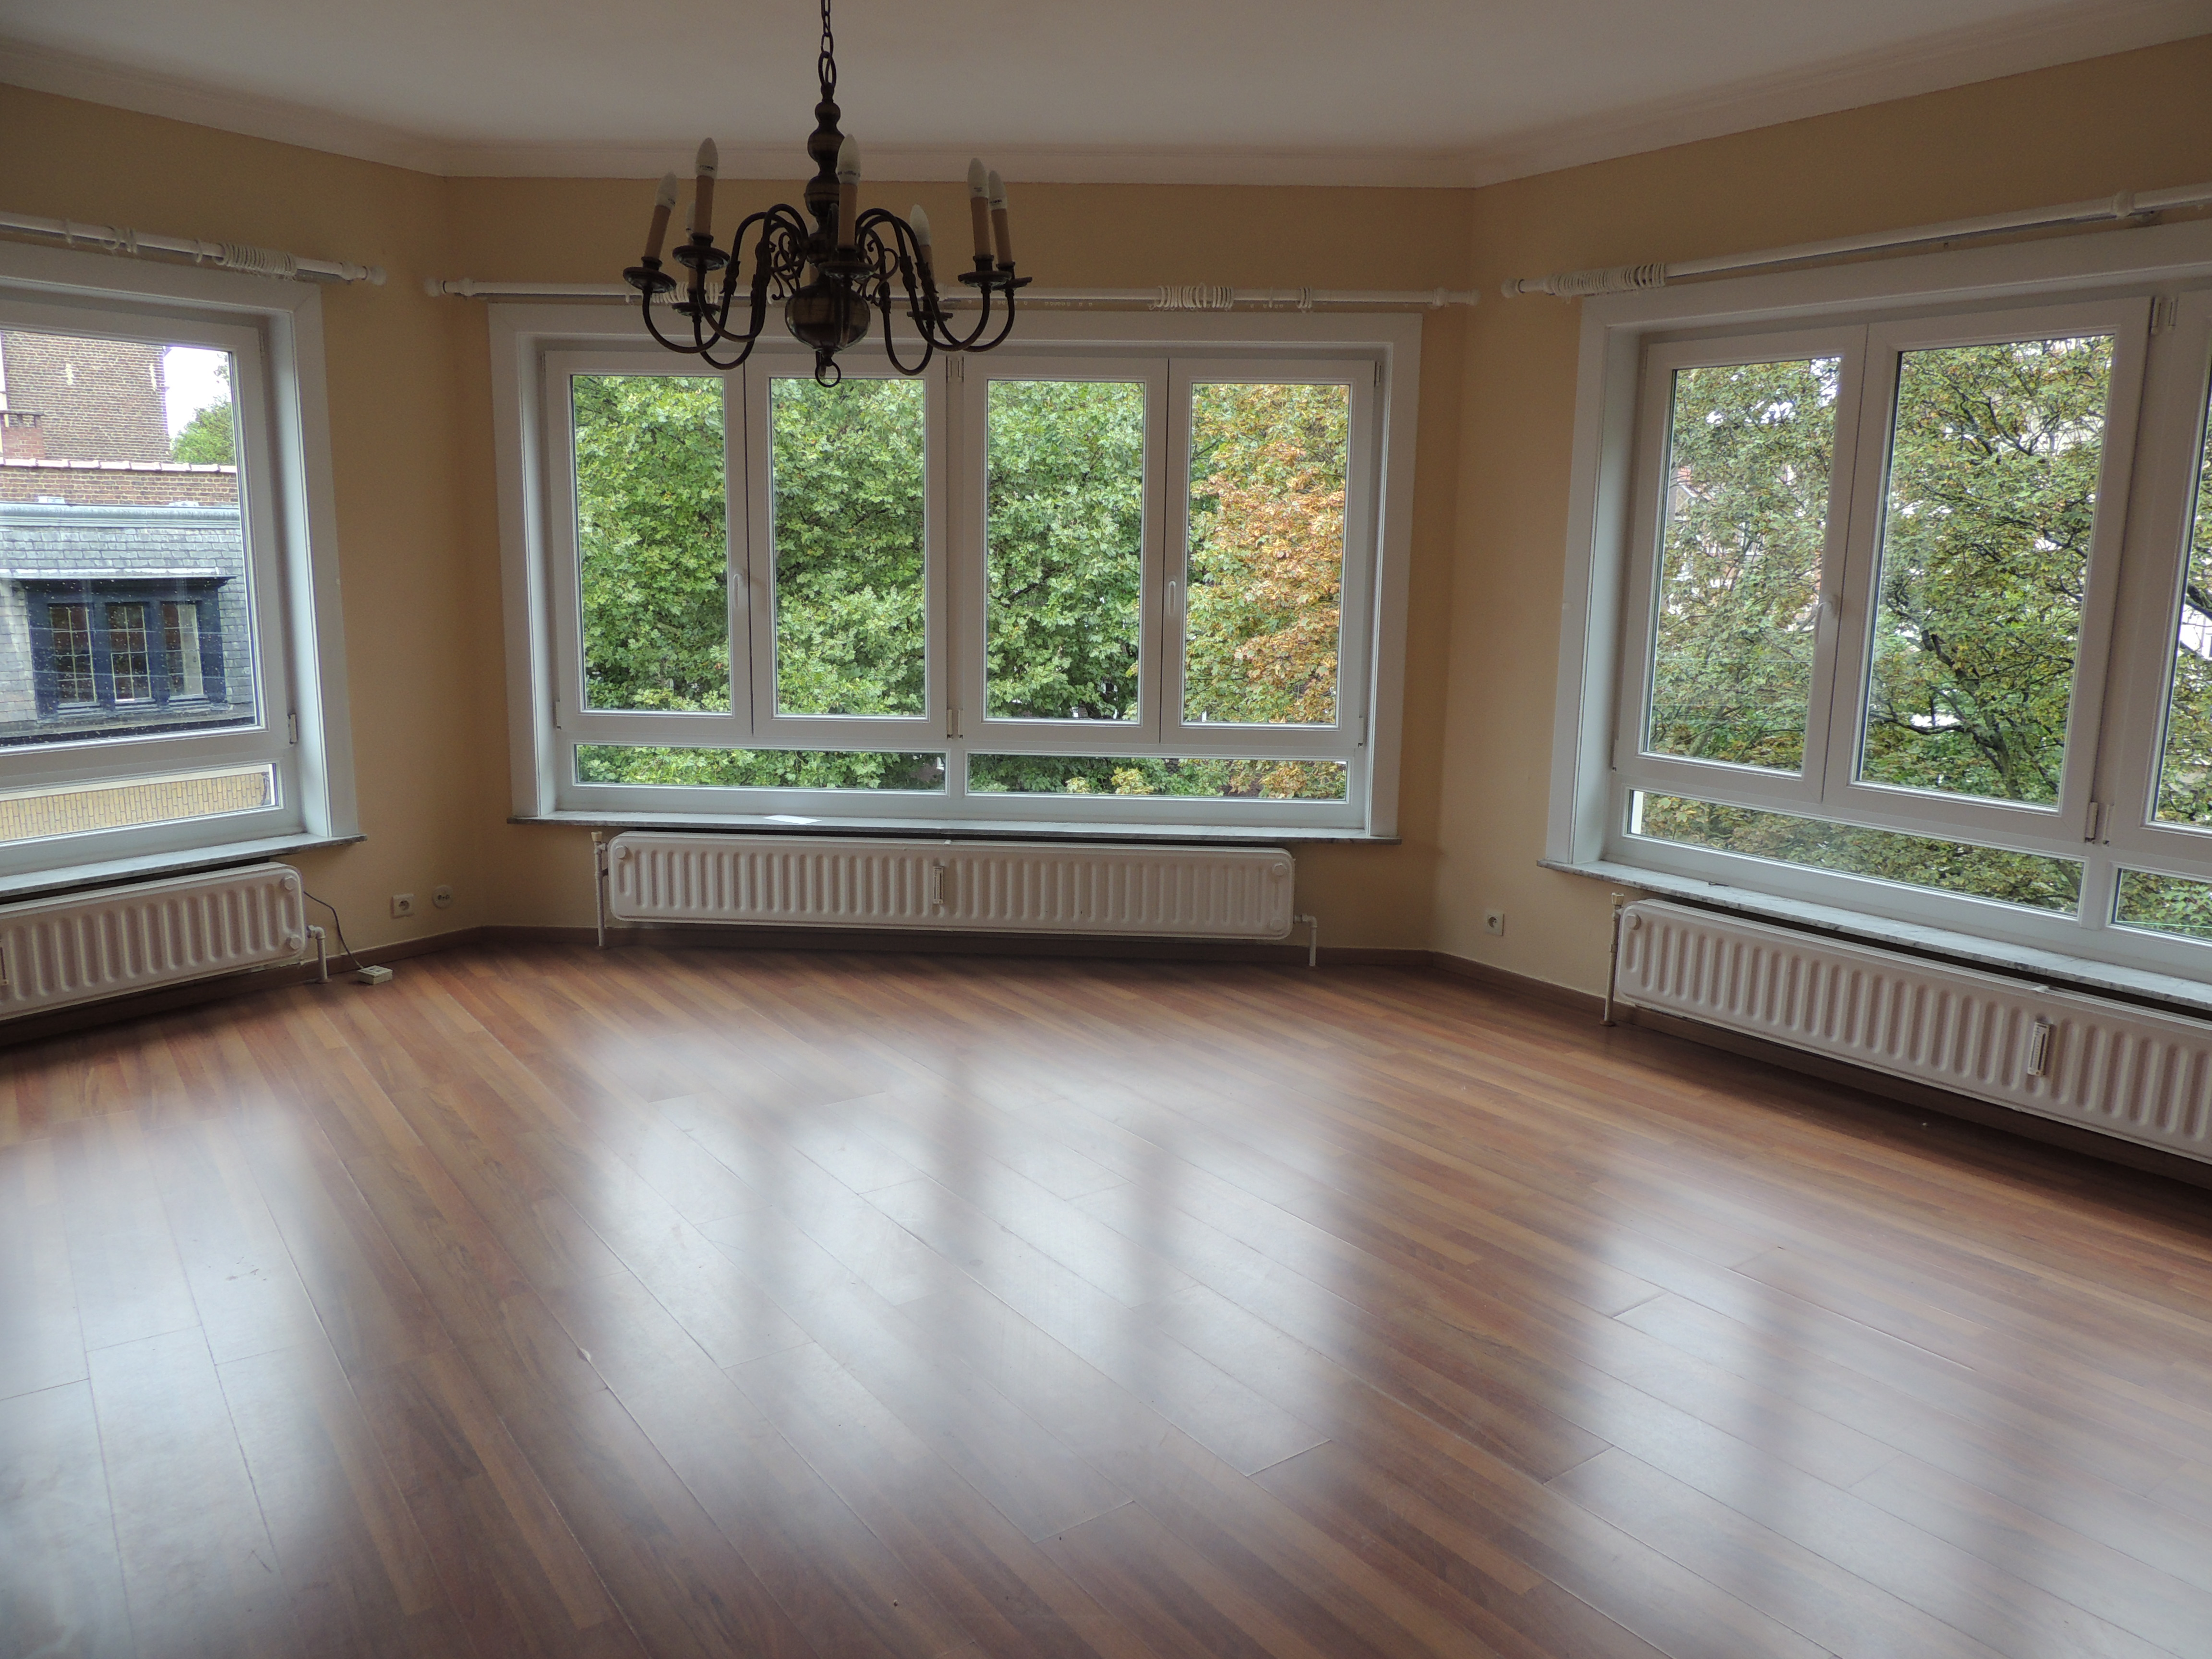 Appartement louer 3 chambres 130 m2 avenue moliere for A louer immobilier